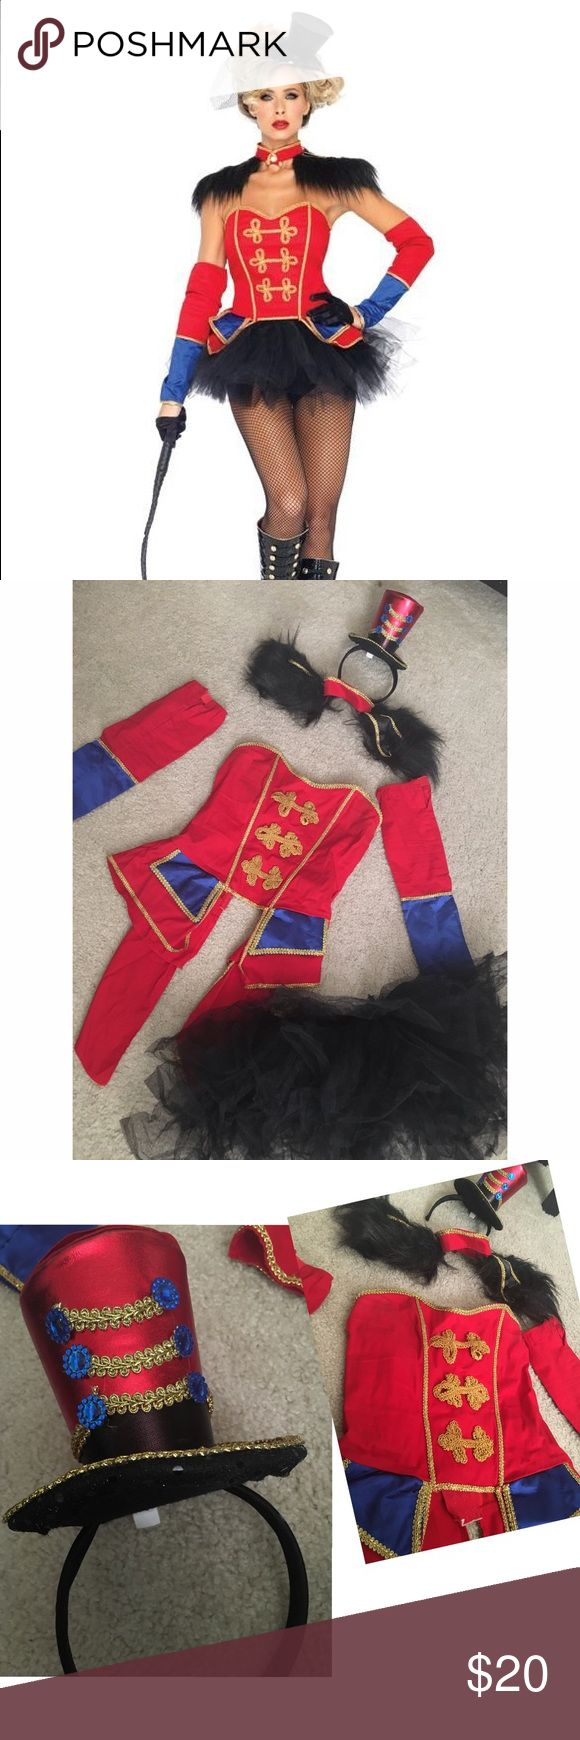 CIRCUS RINGLEADER COSTUME Super cute circus ringleader costume! Comes with: •Corset •Sleeves •Shoulder accessory •Hat •Tulle bottom Corset is very adjustable and can fit up xs-med Worn once for Halloween Leg Avenue Other